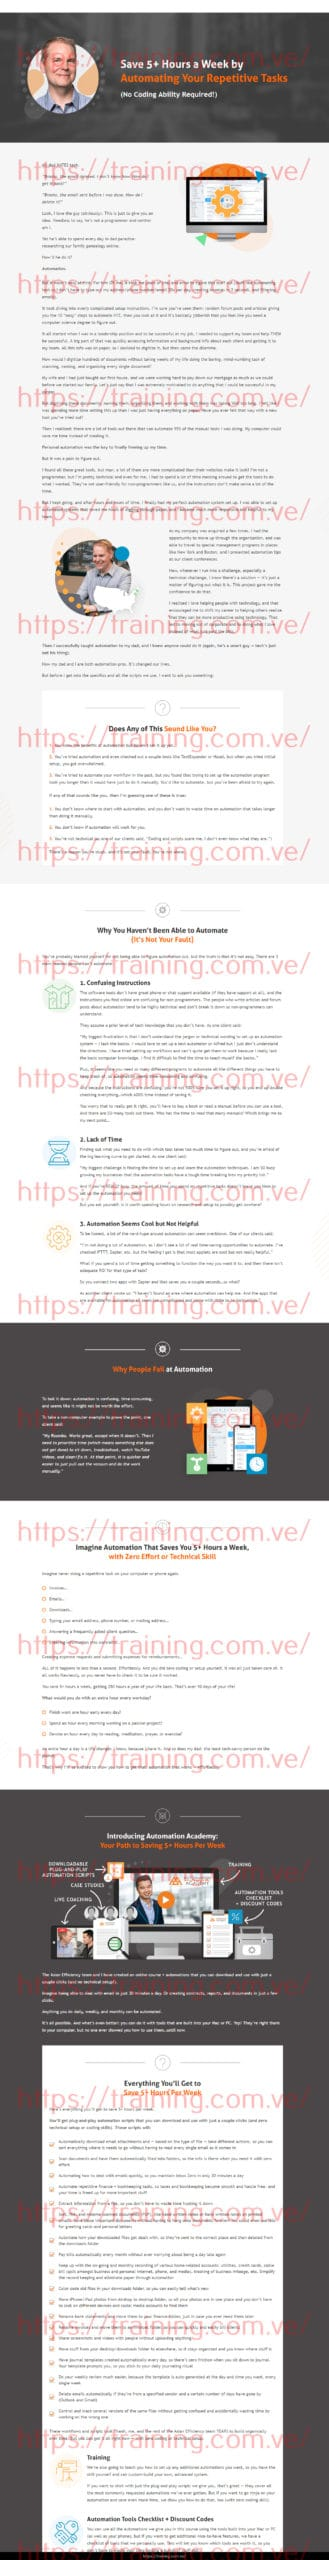 Automation Academy by Asianefficiency Buy